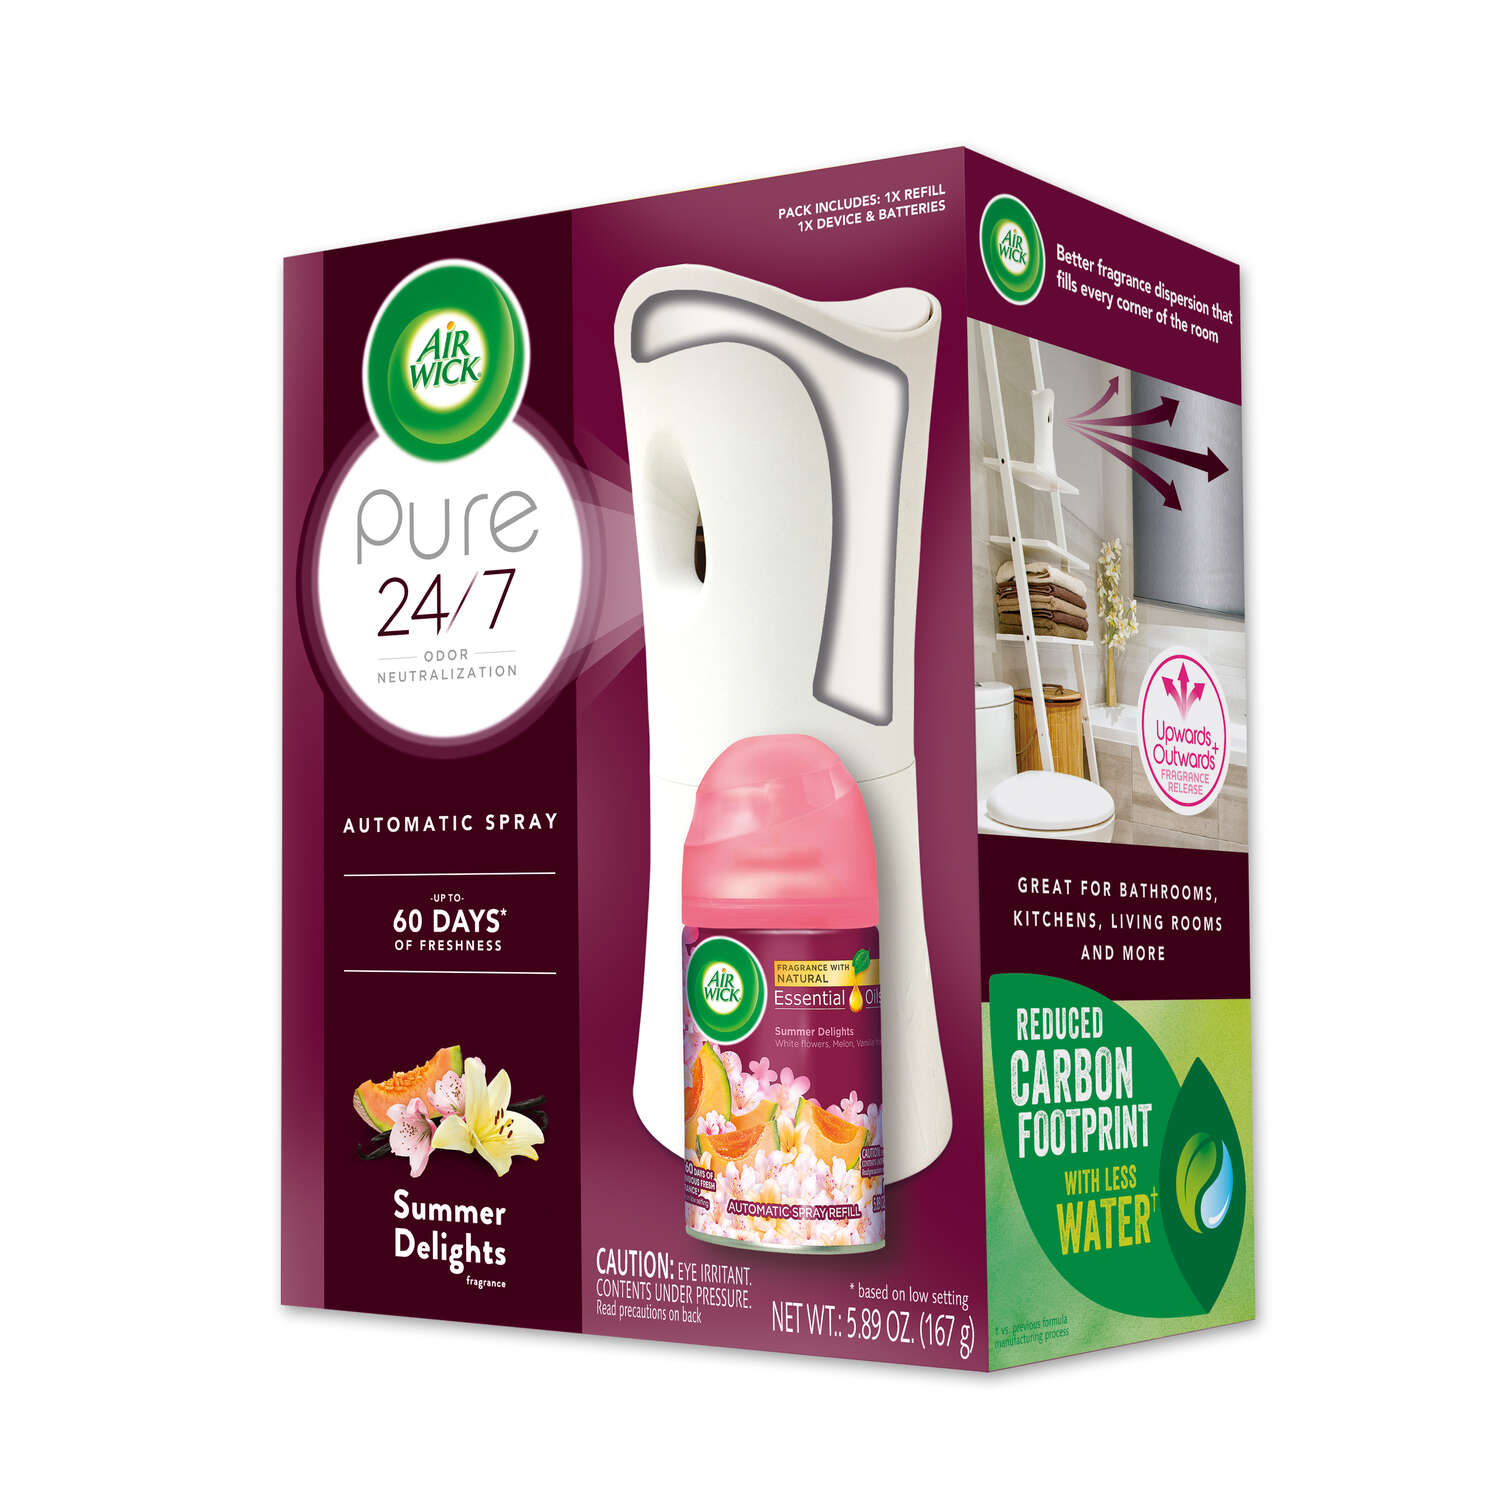 Air Wick  Life Scents  Summer Delights Scent Air Freshener Starter Kit  6.17 oz. Liquid